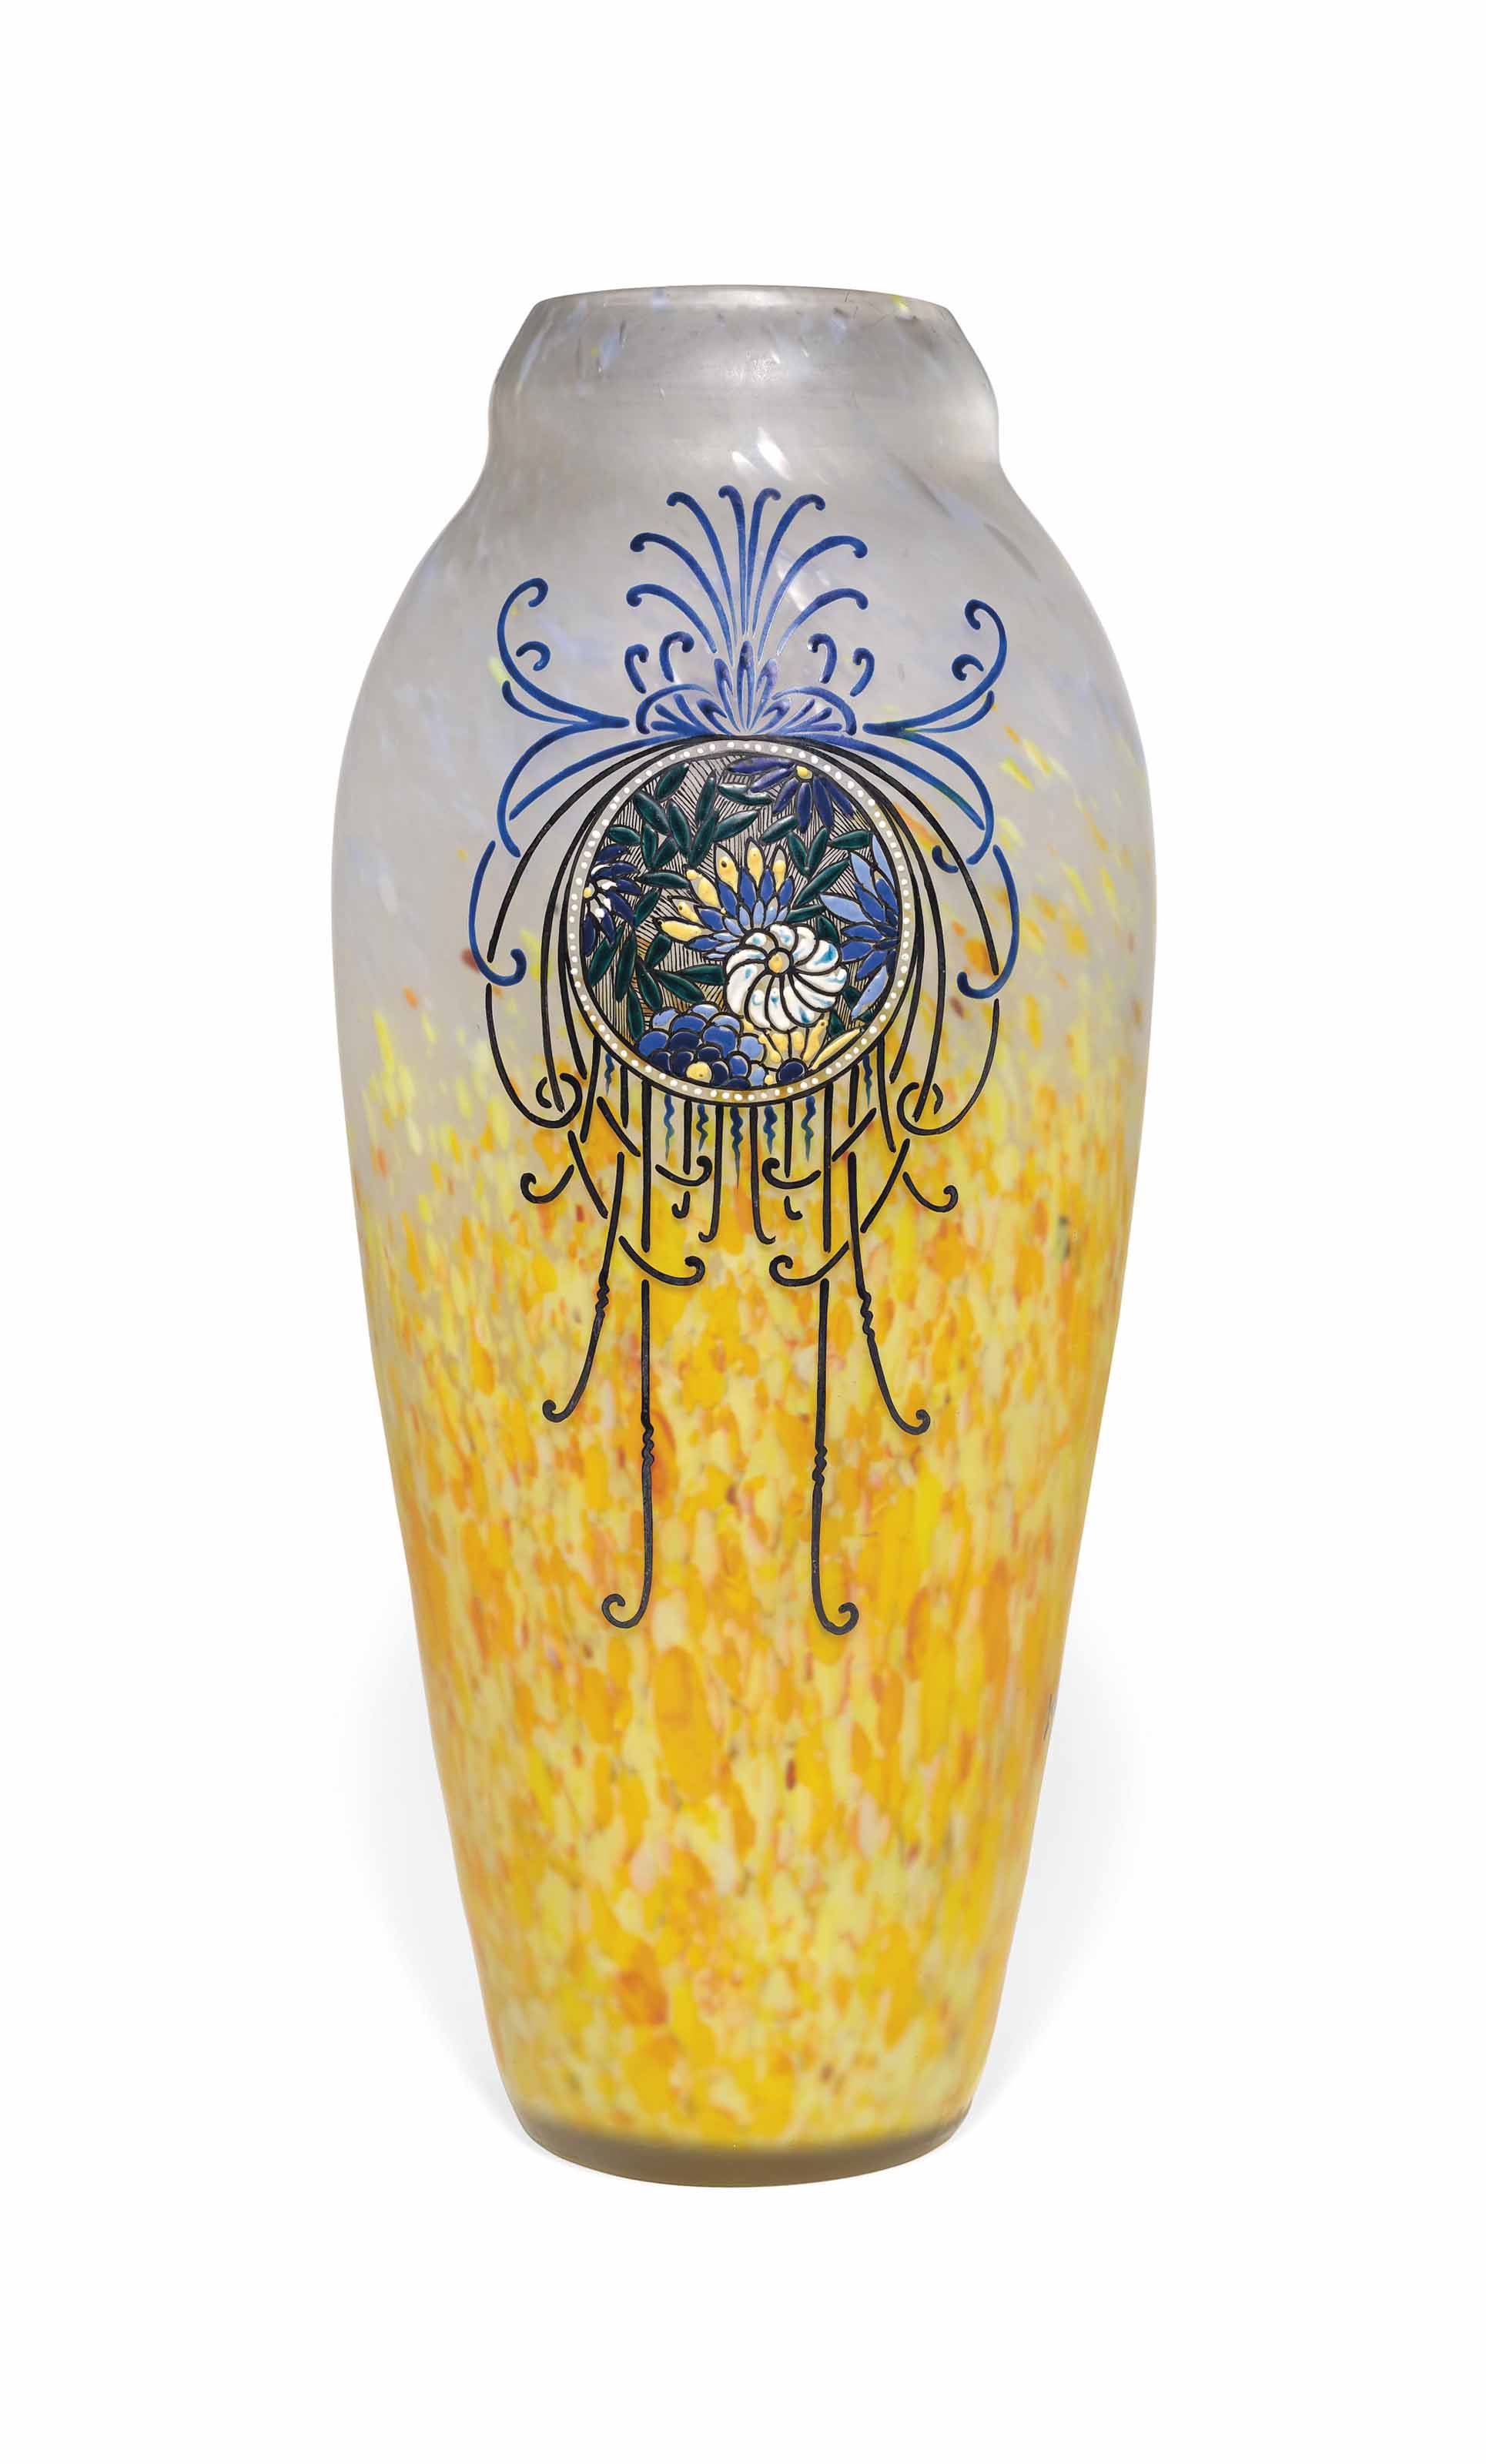 A LARGE LEGRAS CASED AND ENAMELLED GLASS VASE